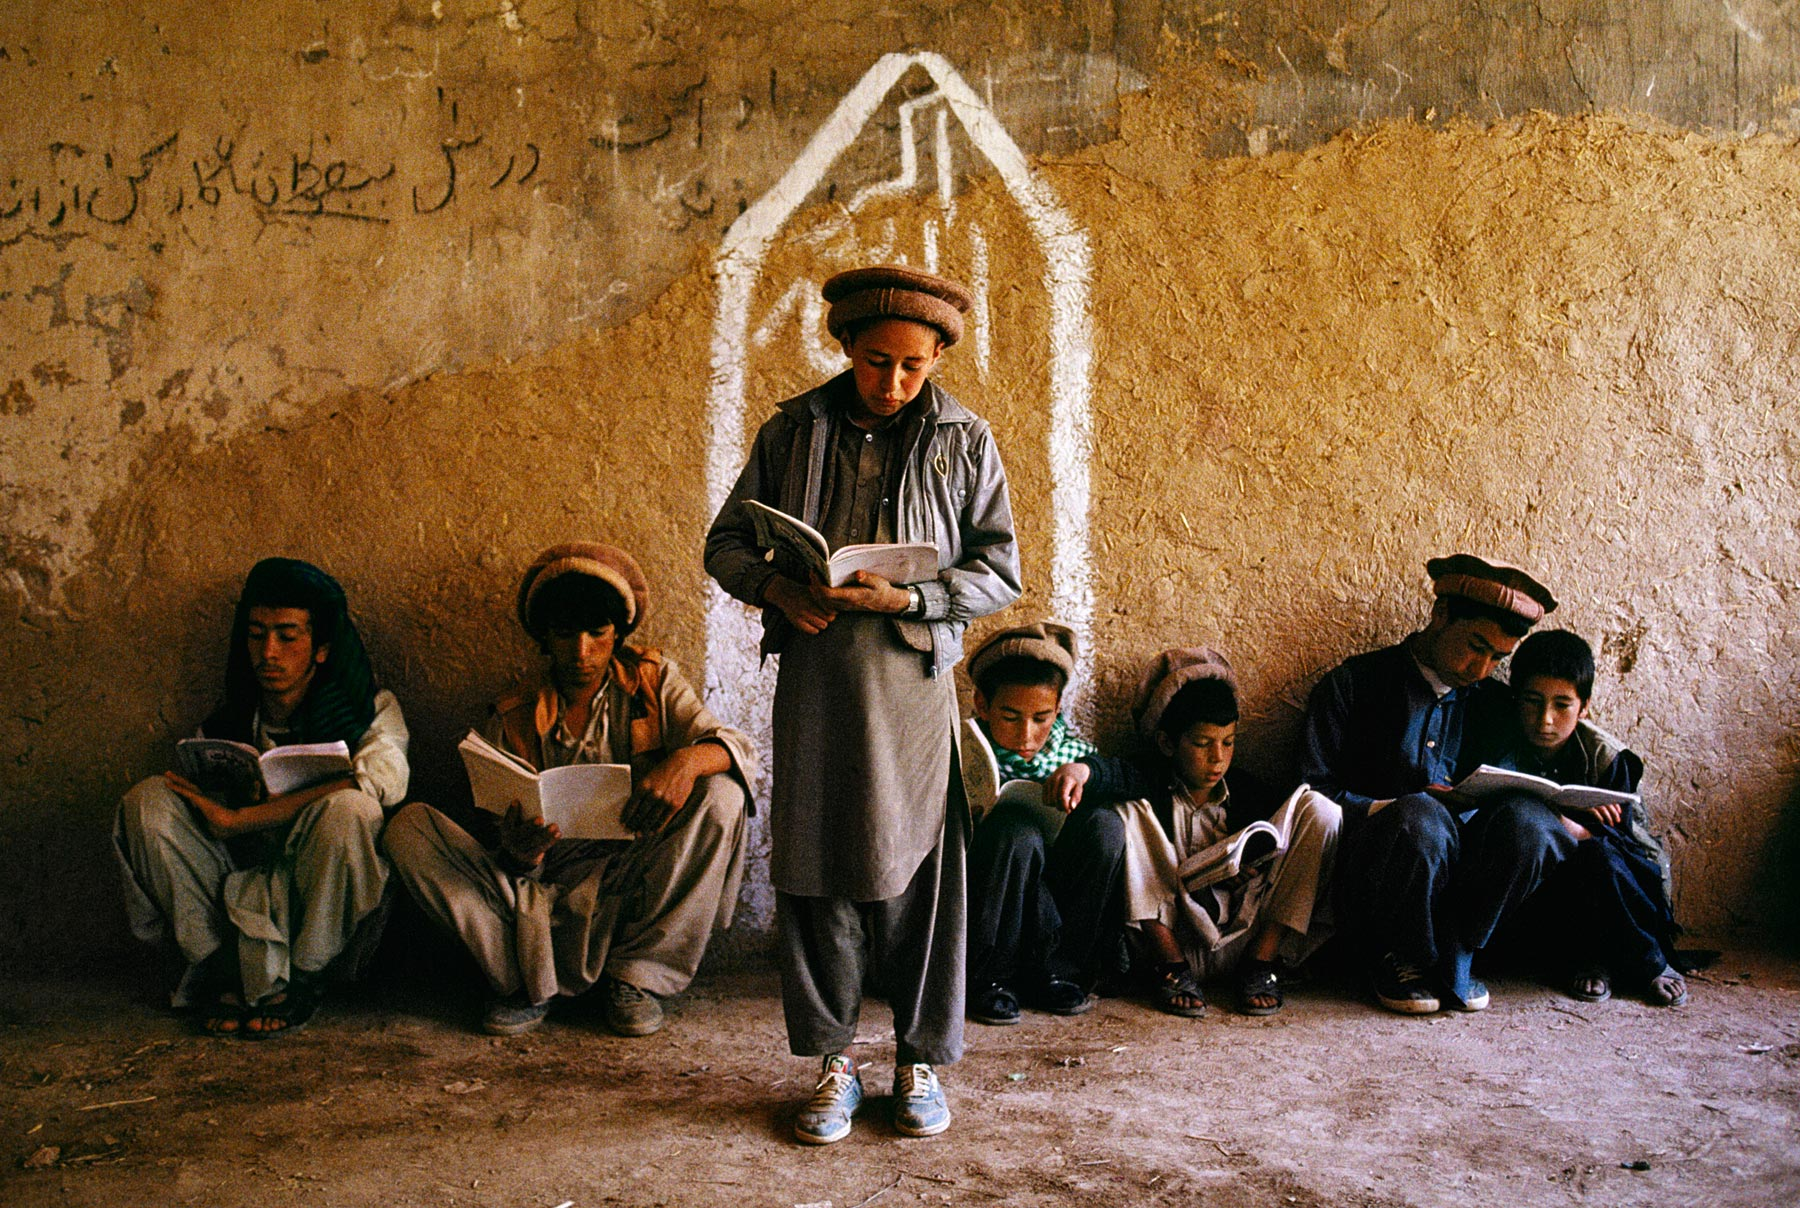 essay about culture of afghanistan Understanding war in afghanistan by joseph j collins understanding war in afghanistan is an excellent primer on a hugely complex conflict joseph collins—a veteran afghan watcher, national war college professor, and respected.